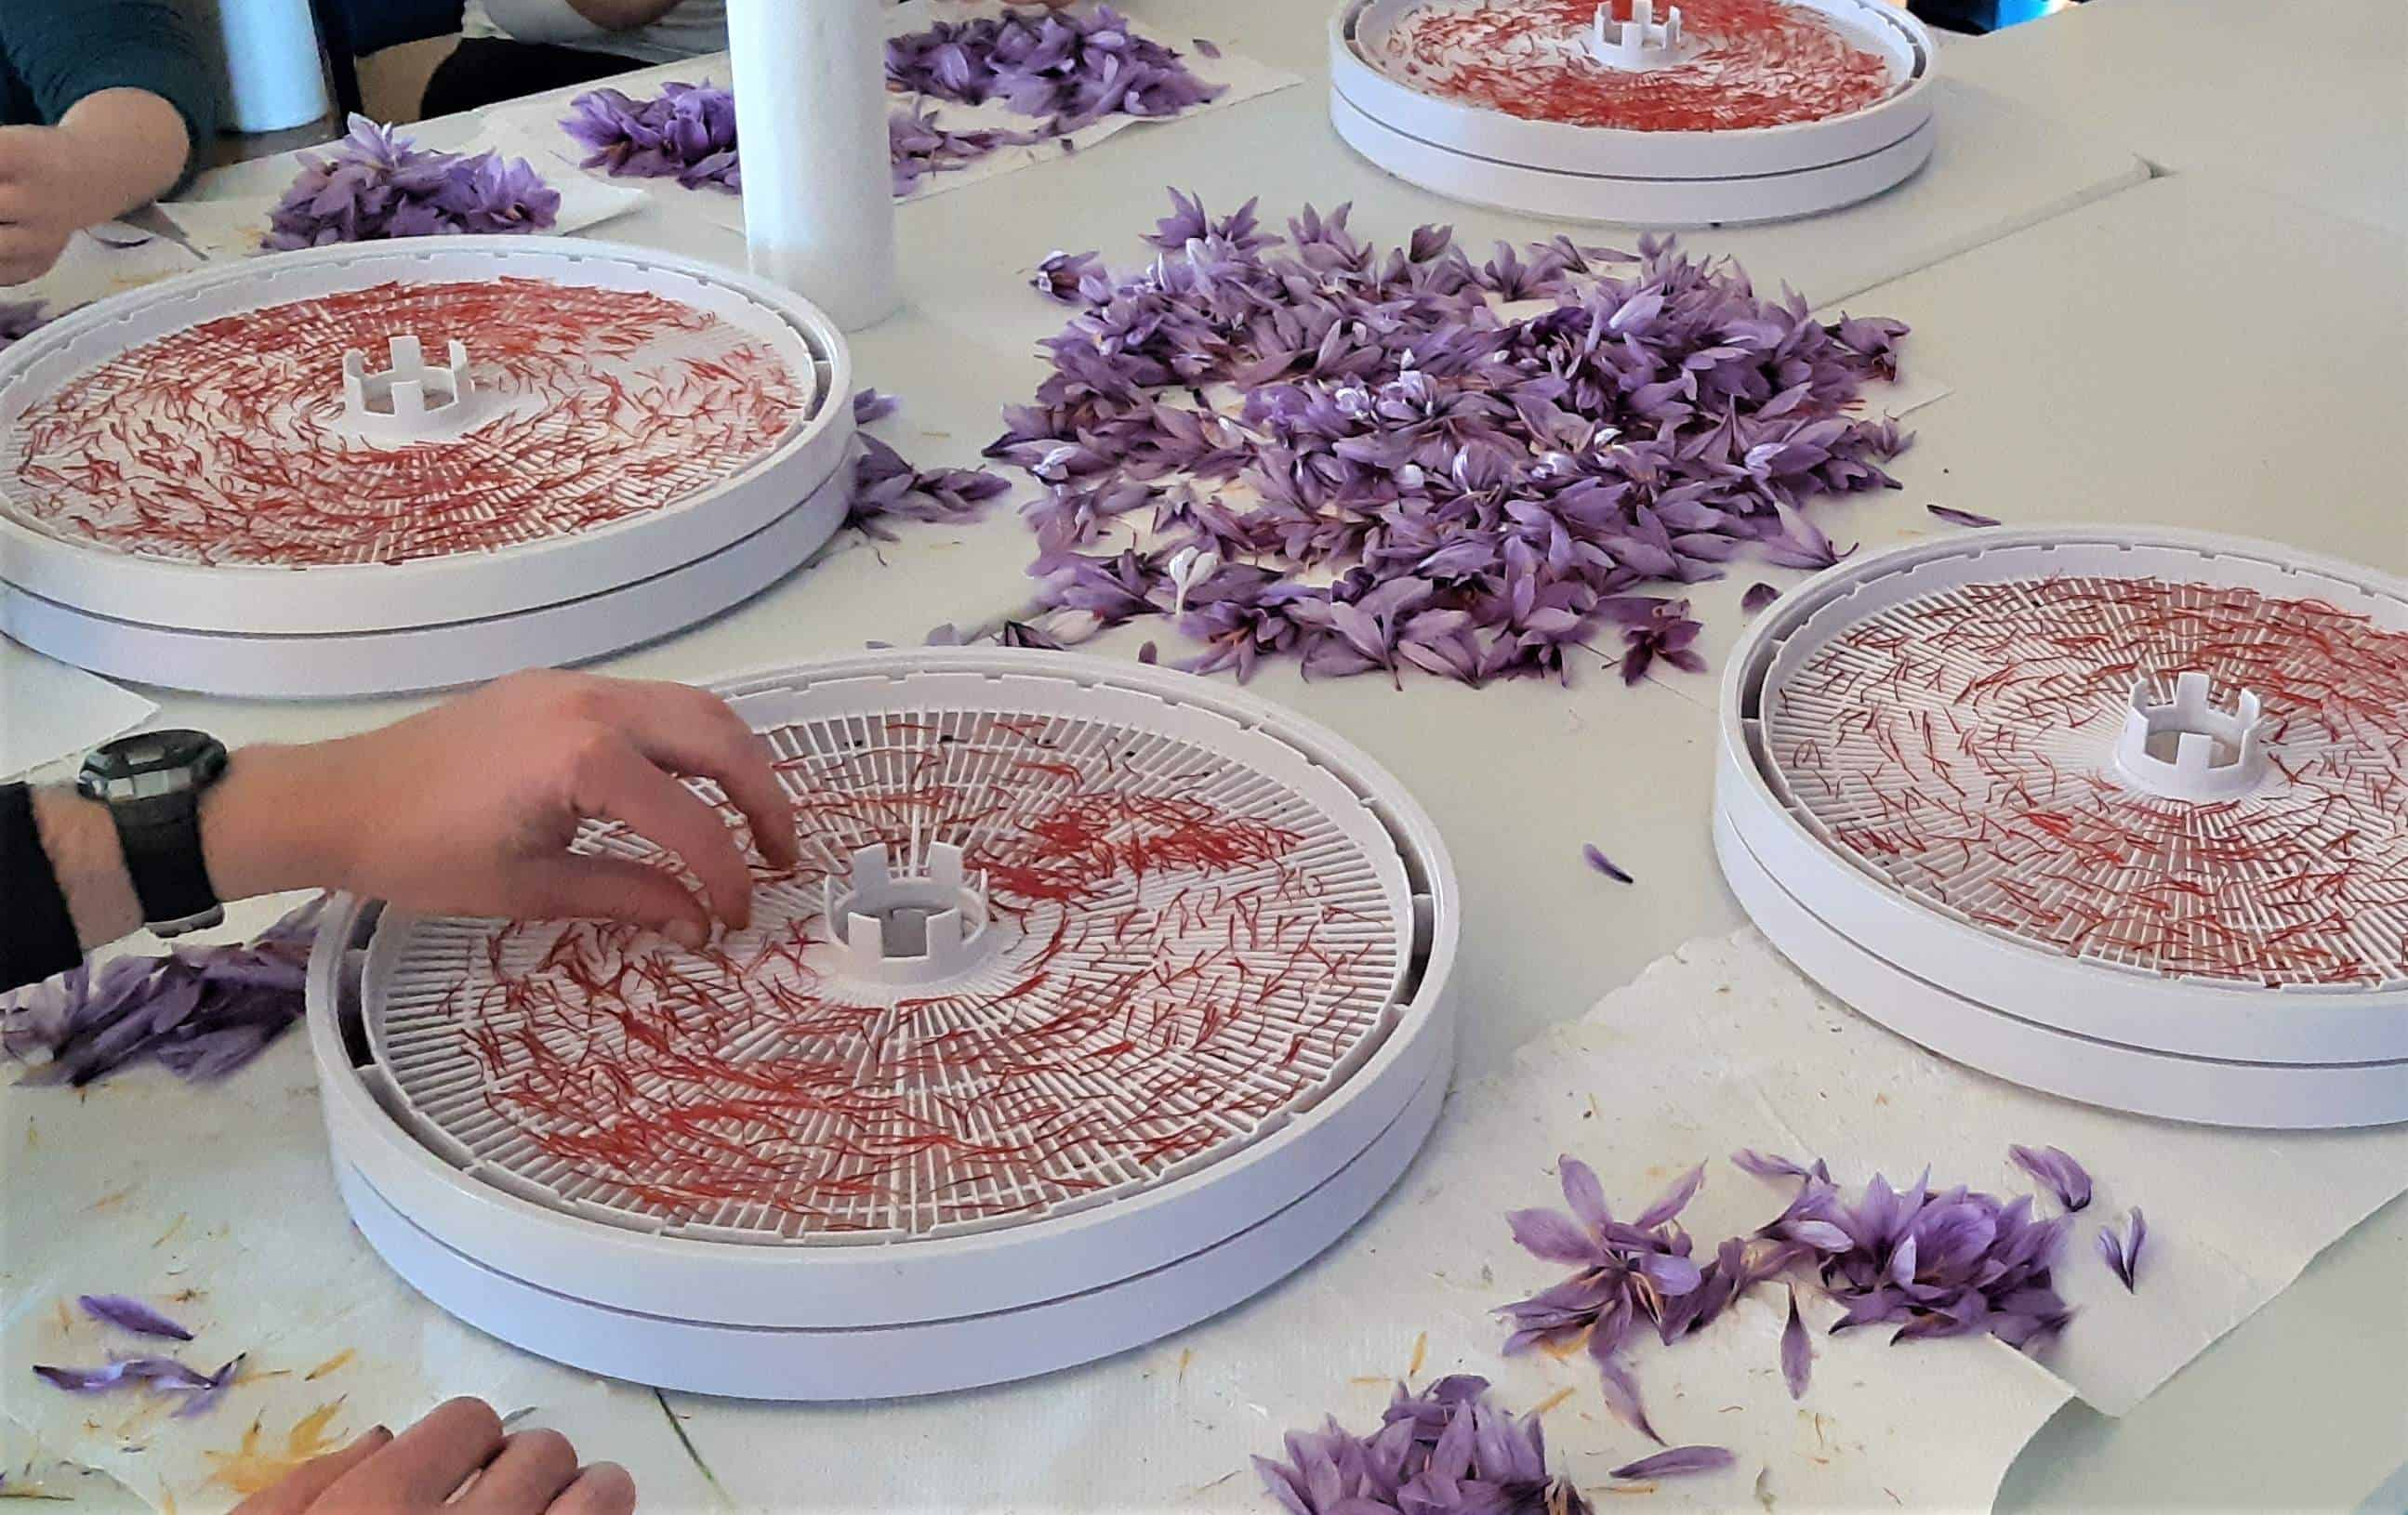 Placing saffron stigmas on the dehydrating trays.